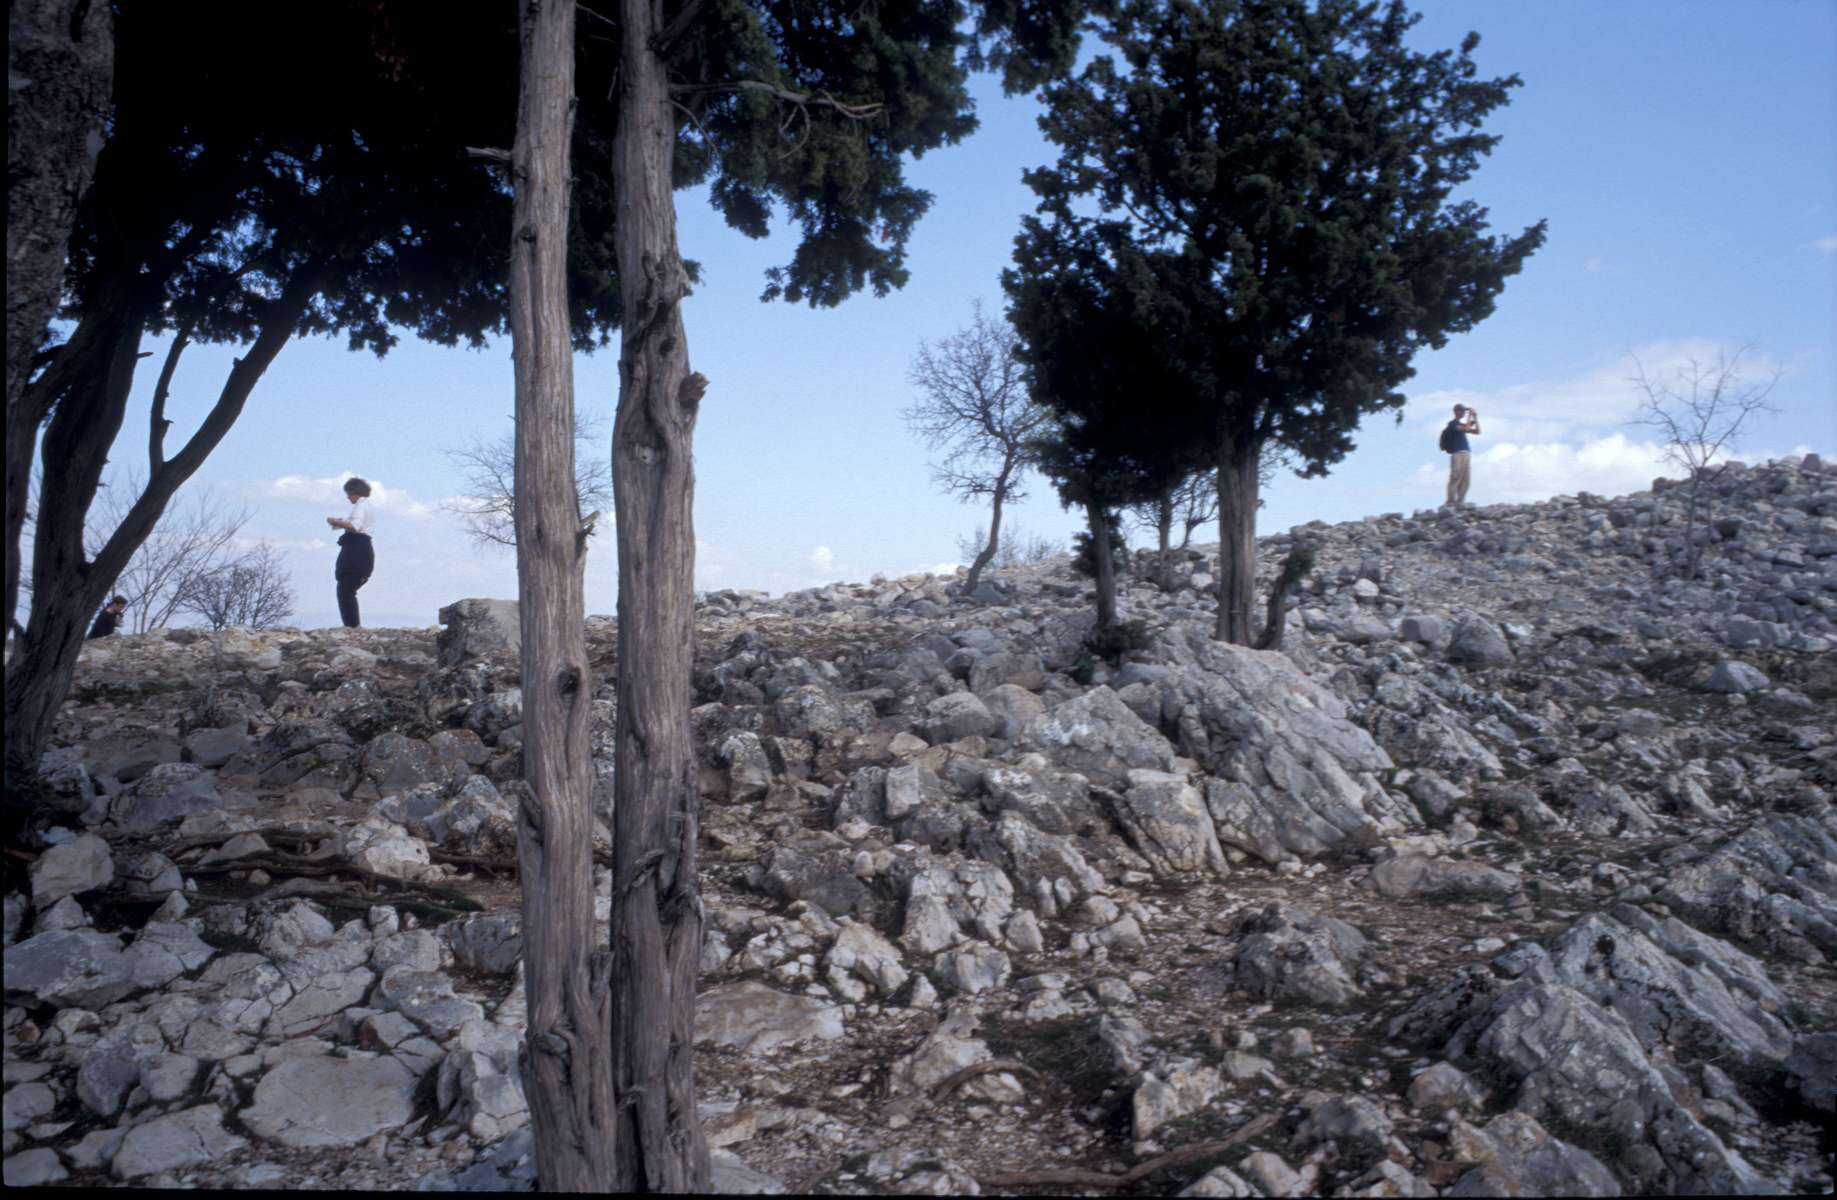 Tourists on top of one of the steep, rocky mountains that ring the town of Medjugorje. The town has become a destination for thousands of Catholic pilgrims from around the world, ever since six teenagers claim to have received a message from the Virgin Mary in a vision in 1981.